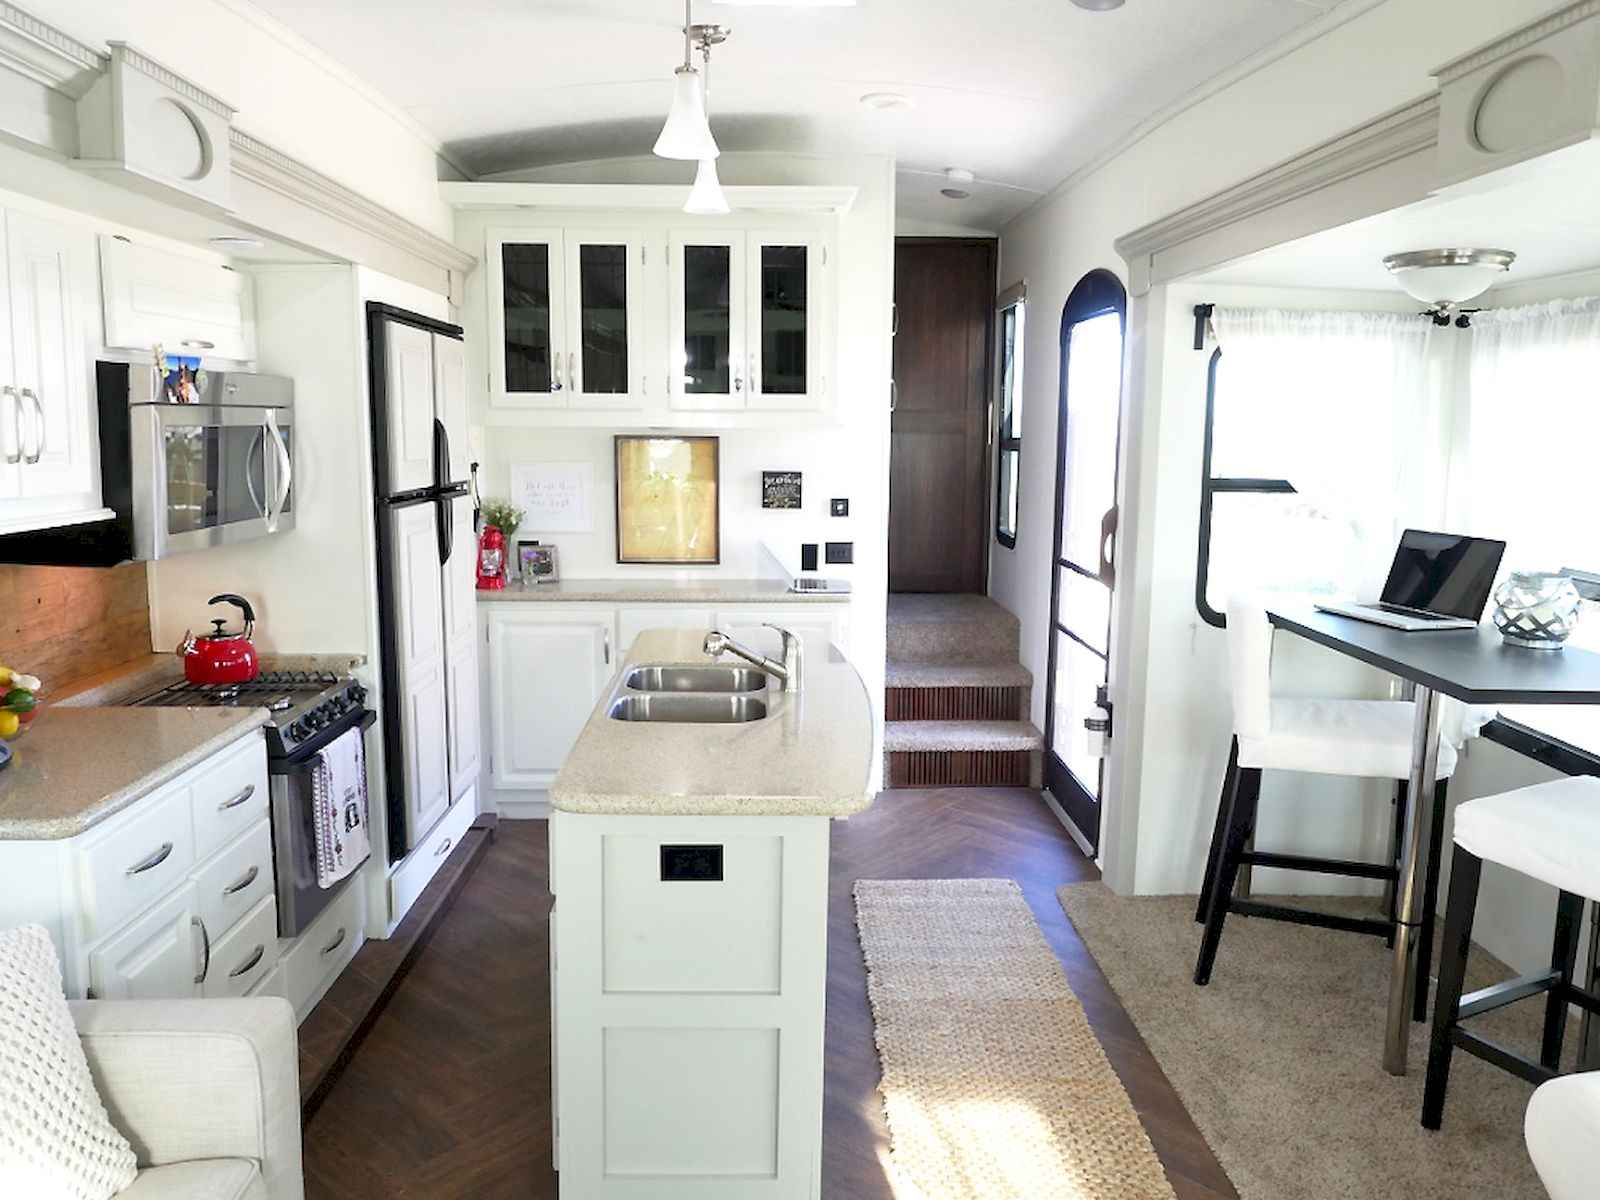 70 Stunning RV Living Camper Room Ideas Decorations Make Your Summer Awesome (2)